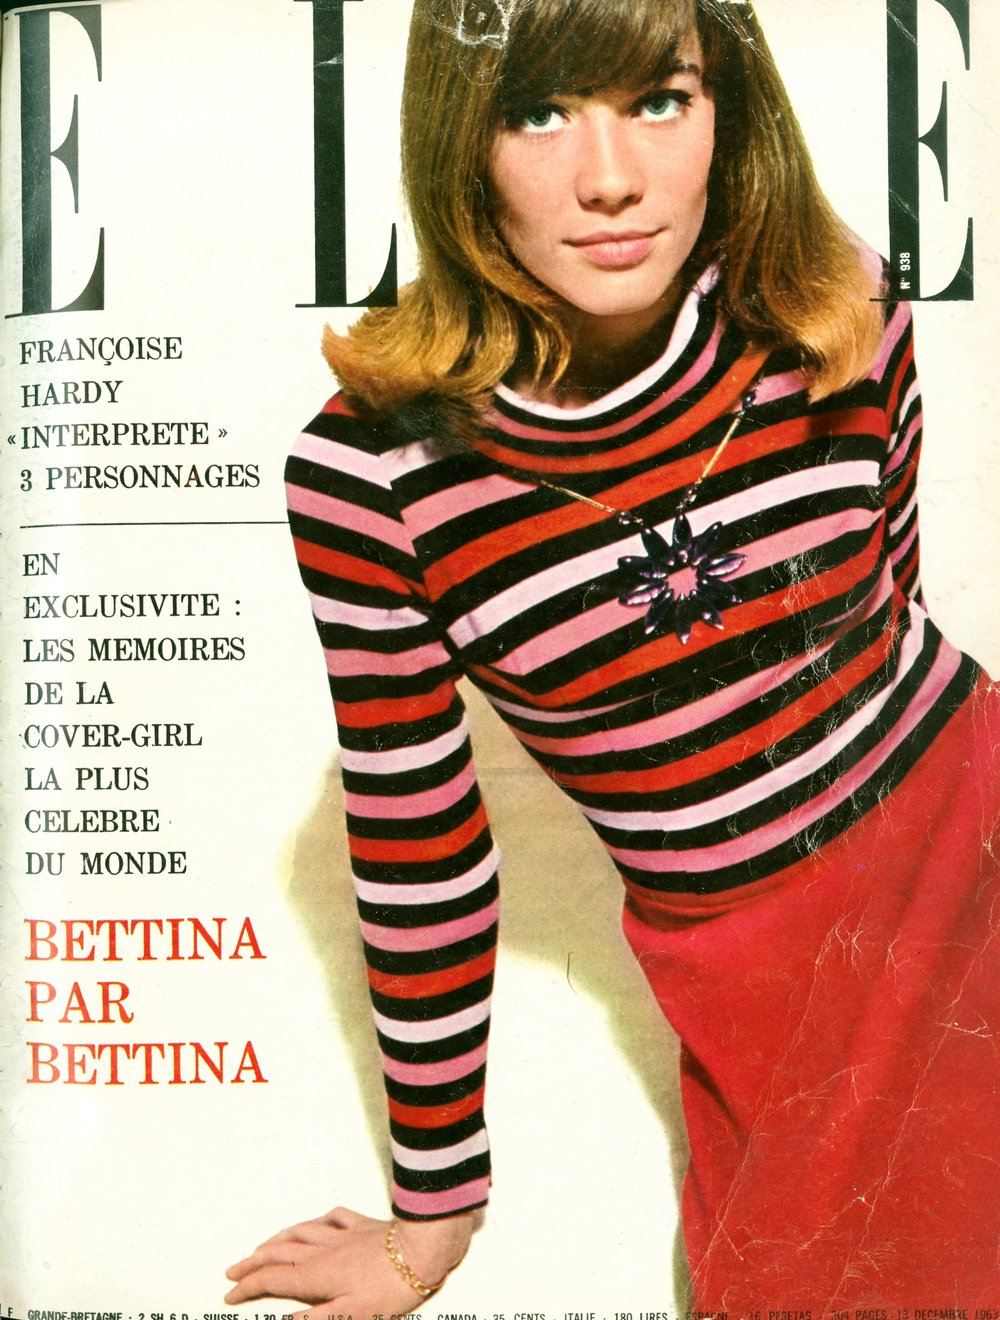 1963. Francoise Hardy wearing a Rykiel sweater.